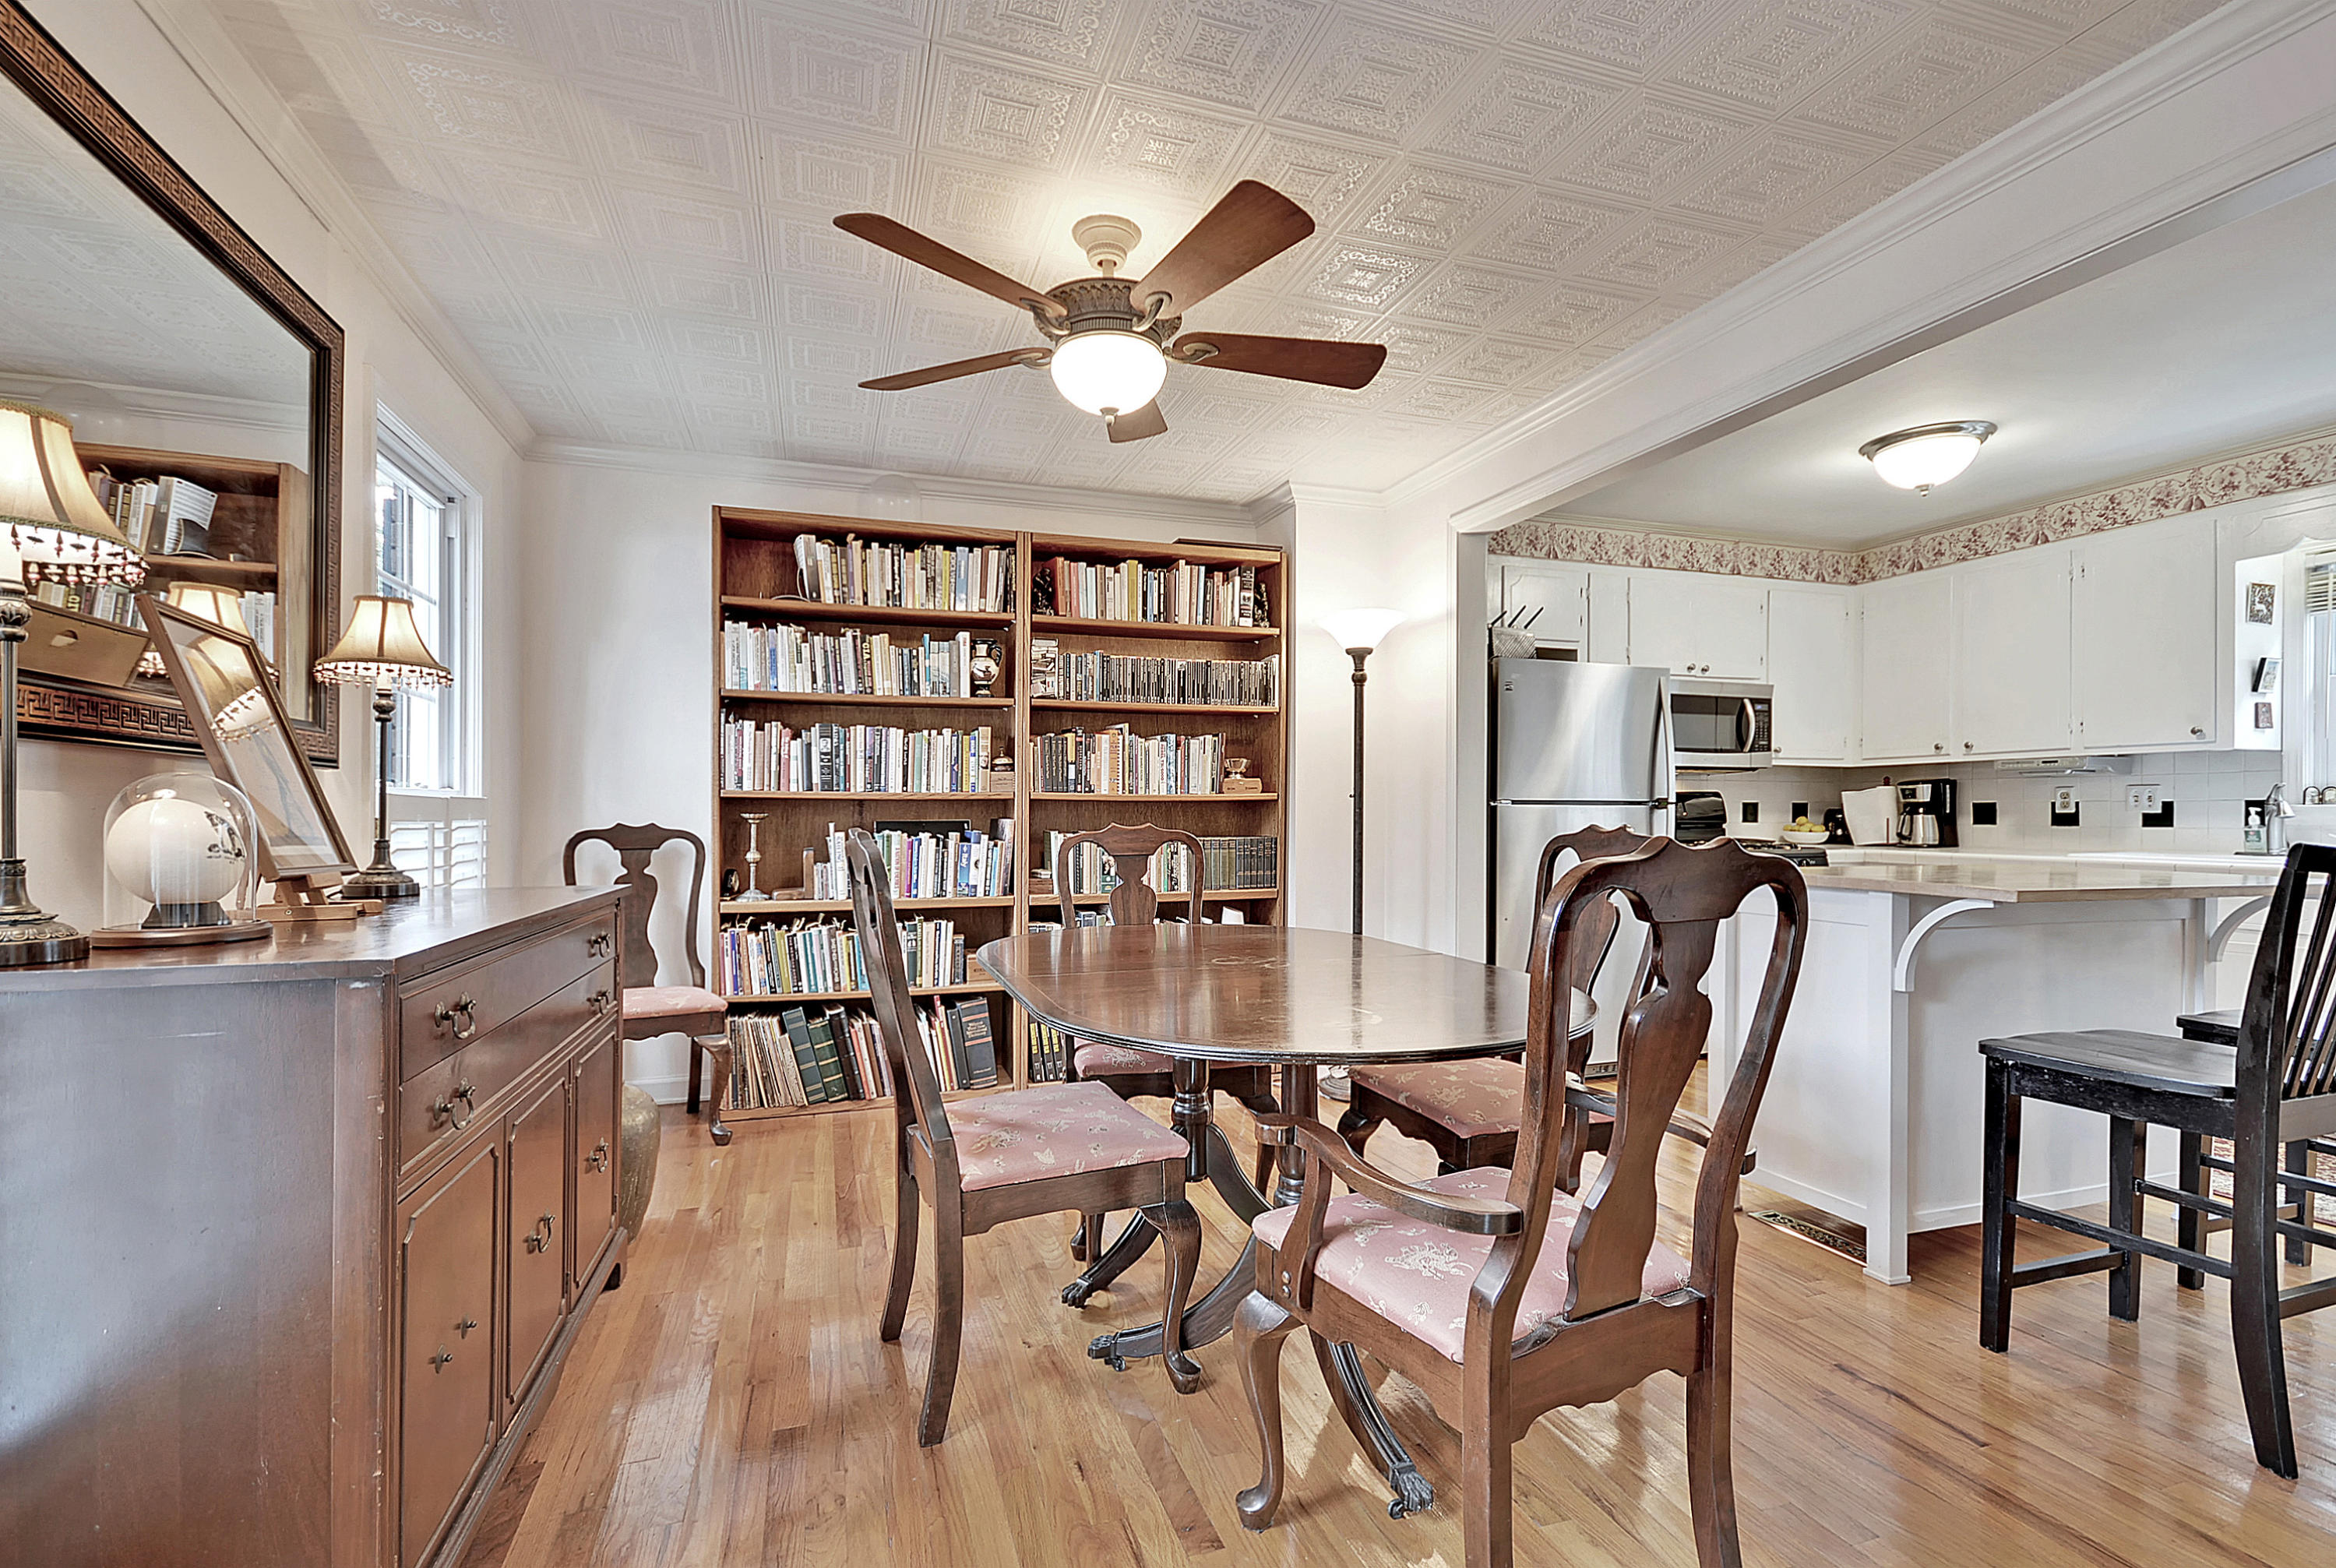 South of Broad Homes For Sale - 0 Rutledge, Charleston, SC - 38